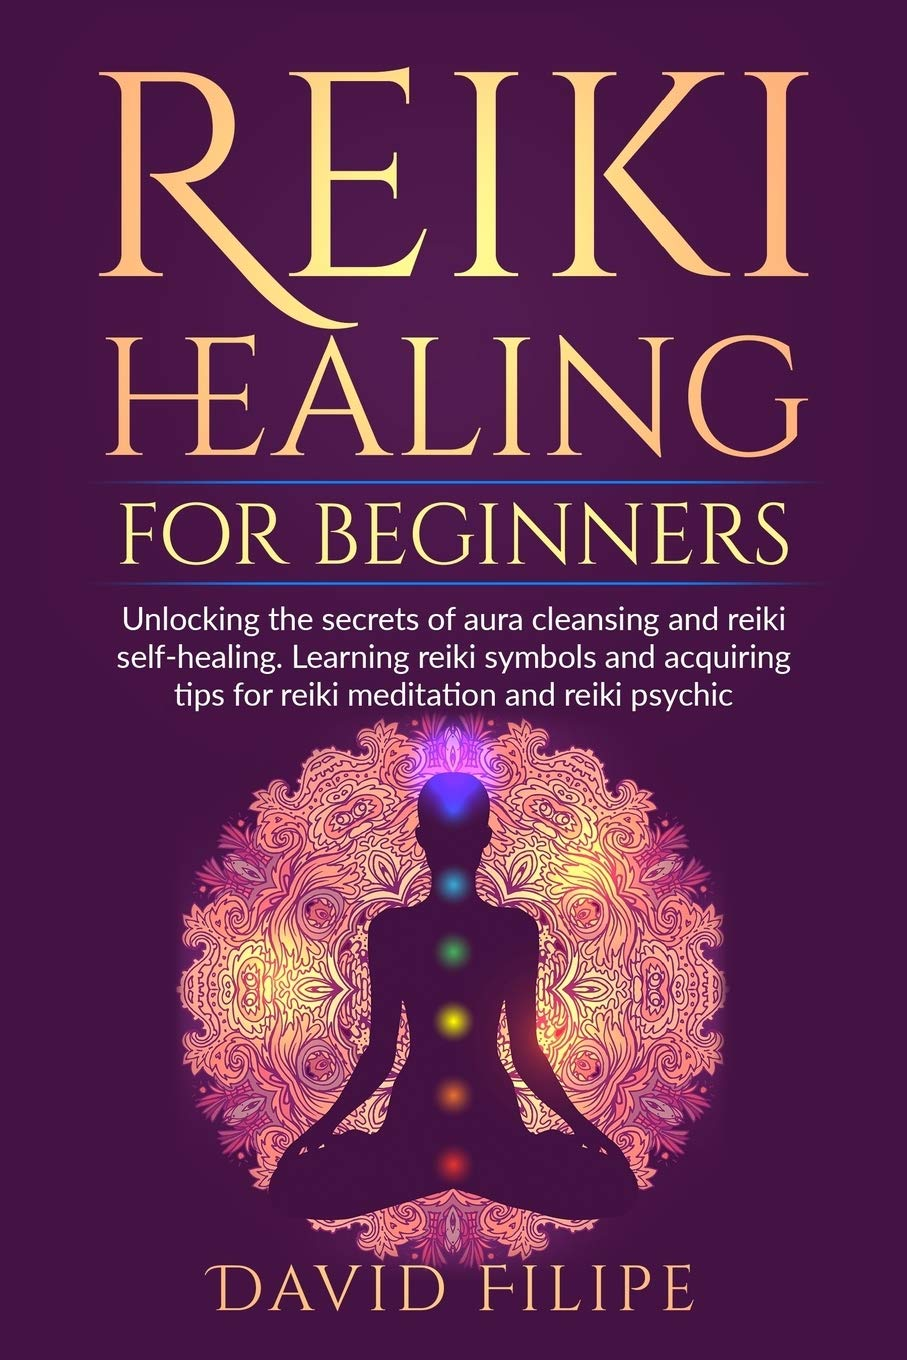 Reiki Healing Beginners self healing meditation